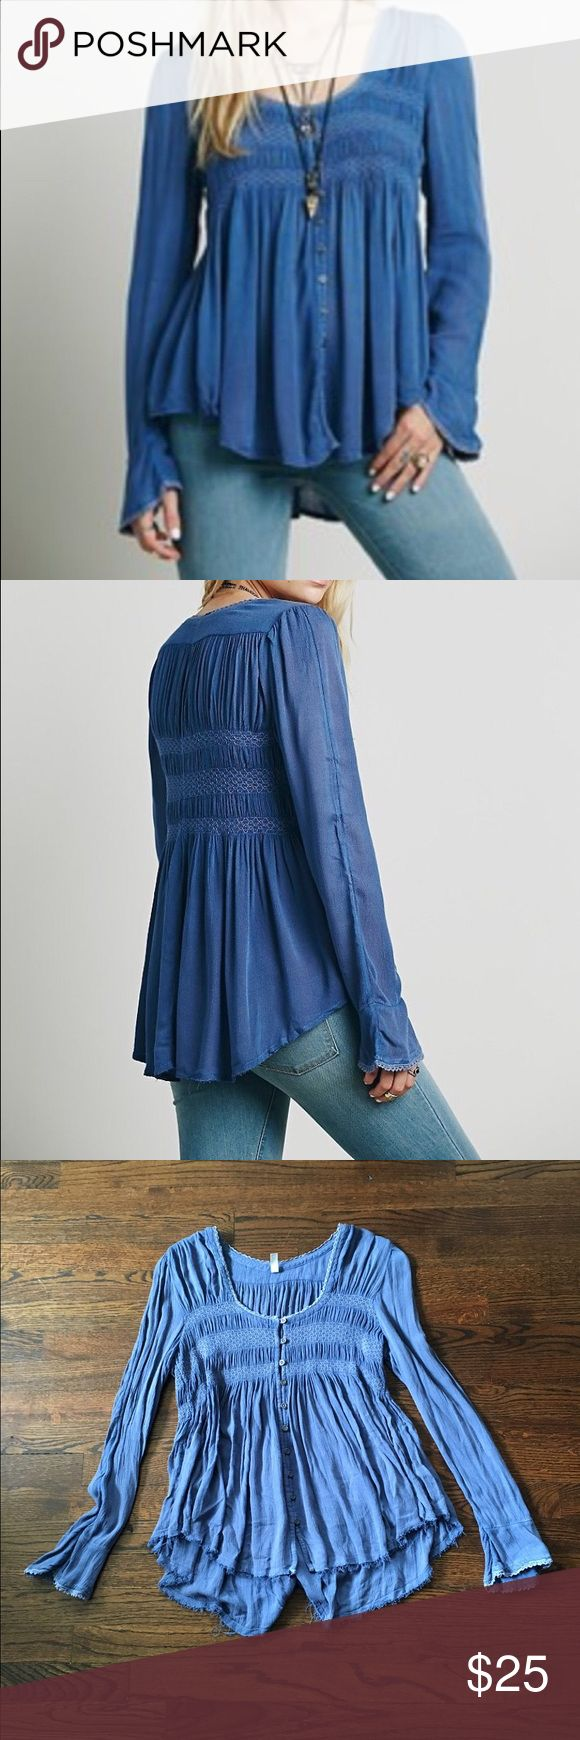 Free People Blue Bird Top No Trades. Gauzy swing buttondown top with smock detailing on the bust. Crochet trim, raw hem. Size small. In perfect condition. Free People Tops Tees - Long Sleeve